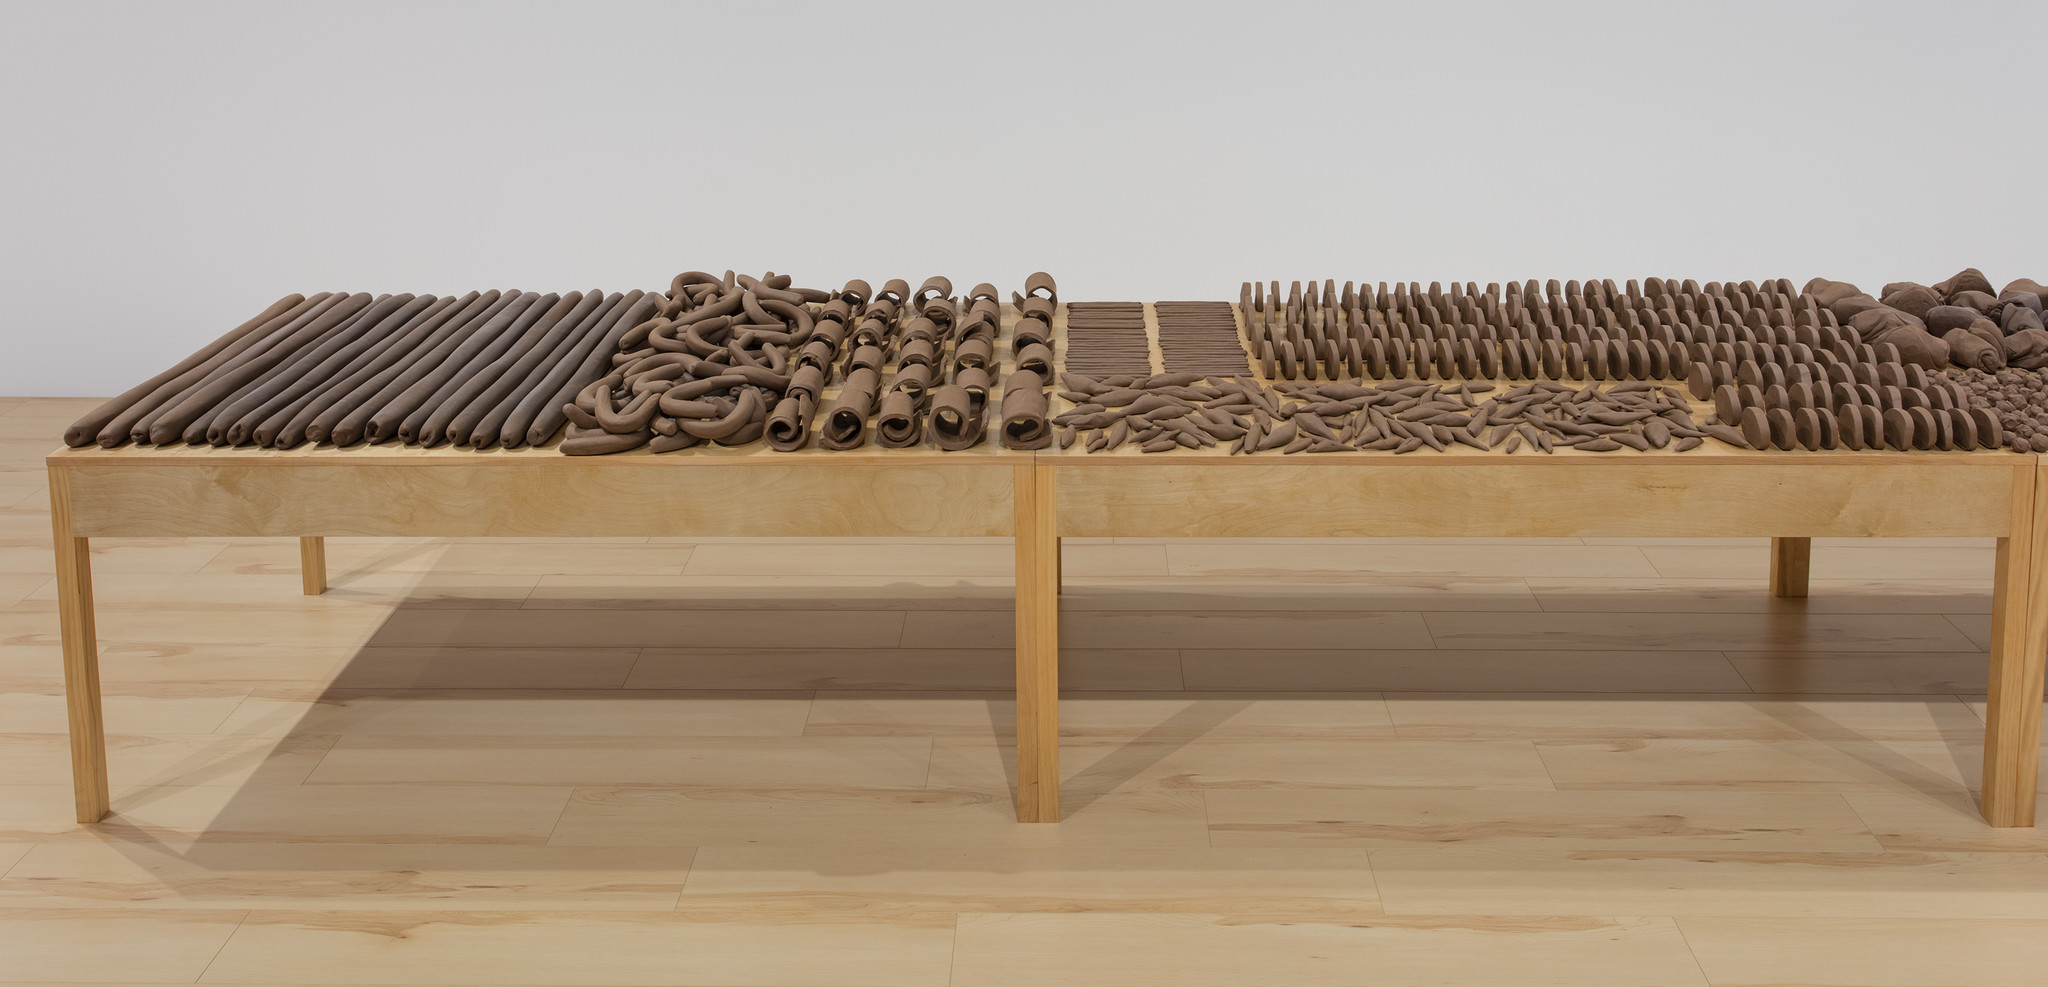 "Anna Maria Maiolino, ""Untitled Clay Table Installation (detail),"" 2017, raw clay and wood."